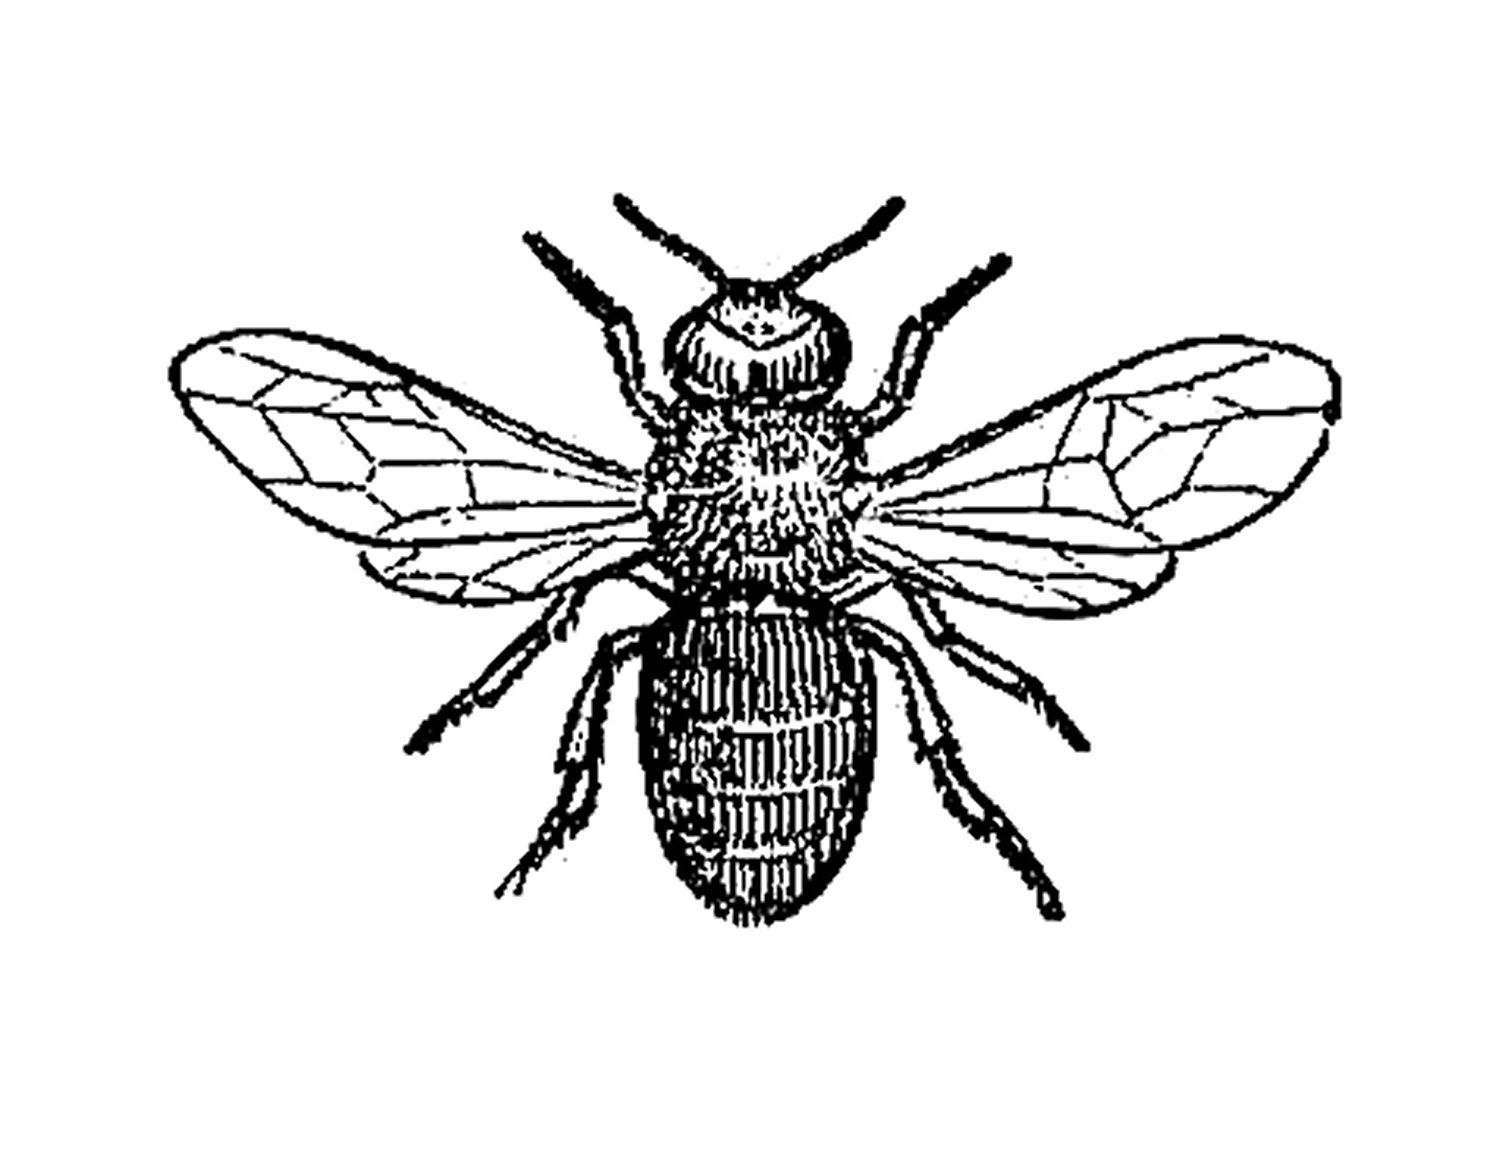 Vintage kids bug clipart picture black and white Antique Images: Insect Clip Art: Black and White ... picture black and white